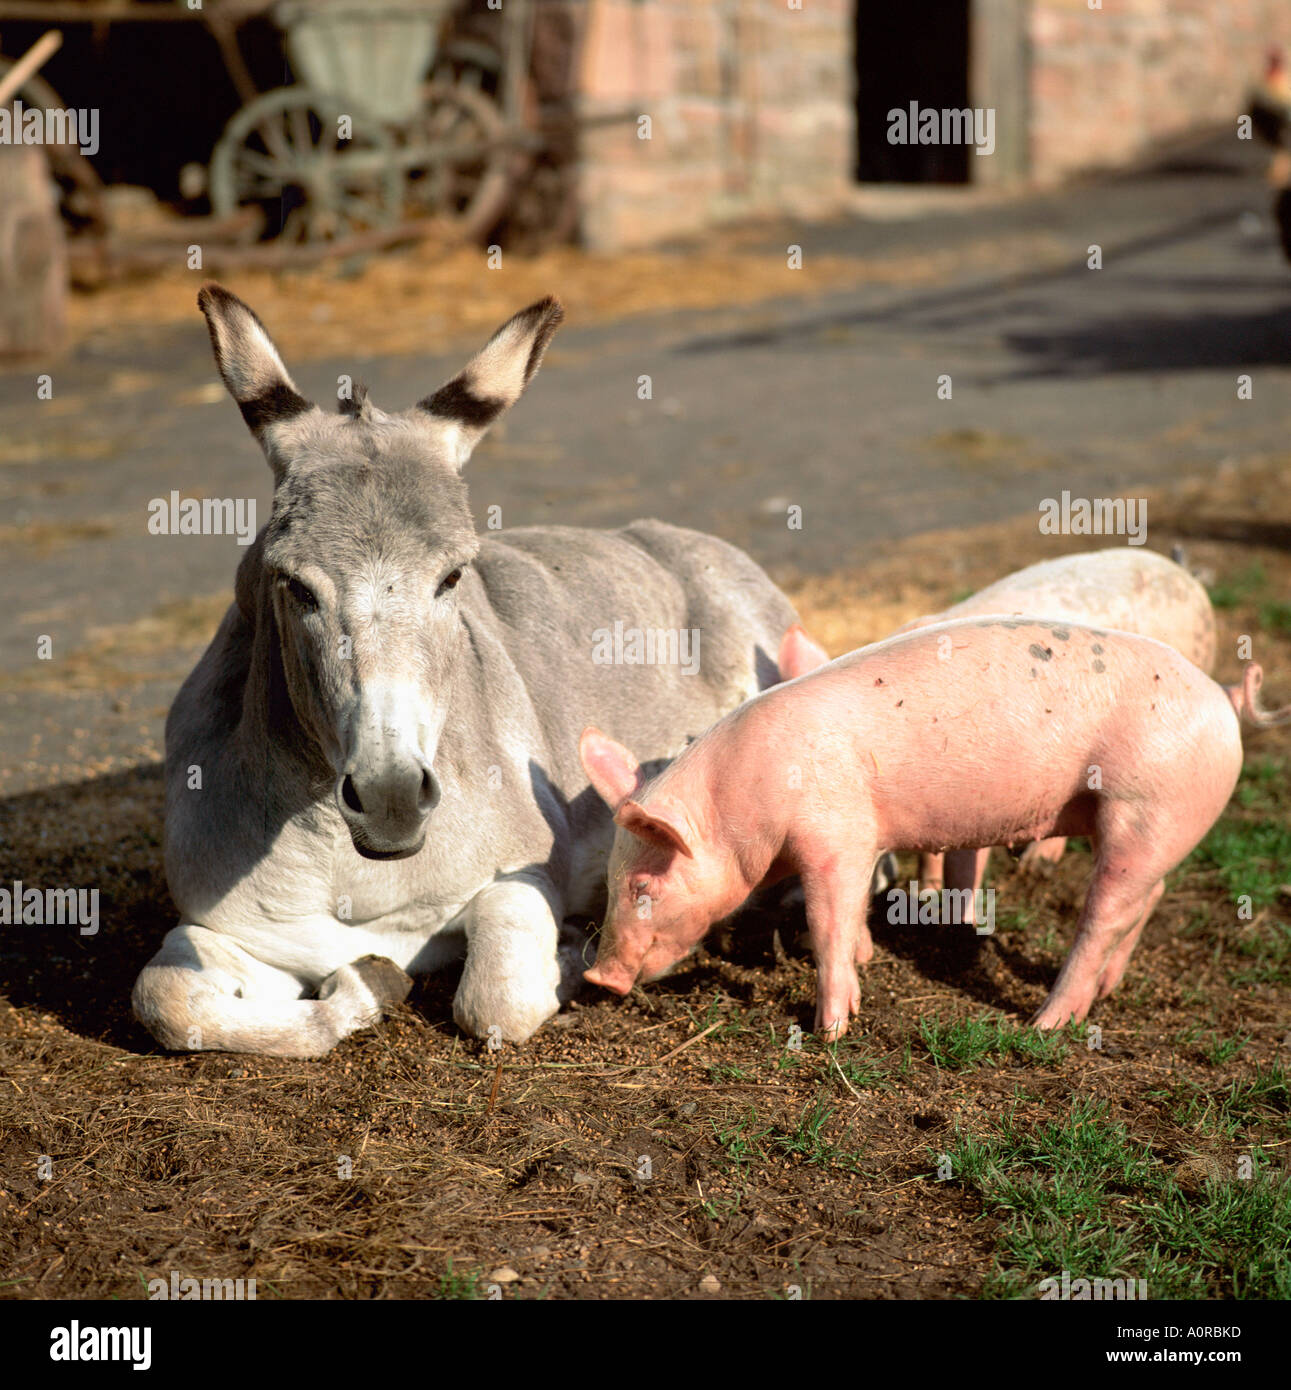 Donkey And Pig Imágenes De Stock & Donkey And Pig Fotos De Stock - Alamy